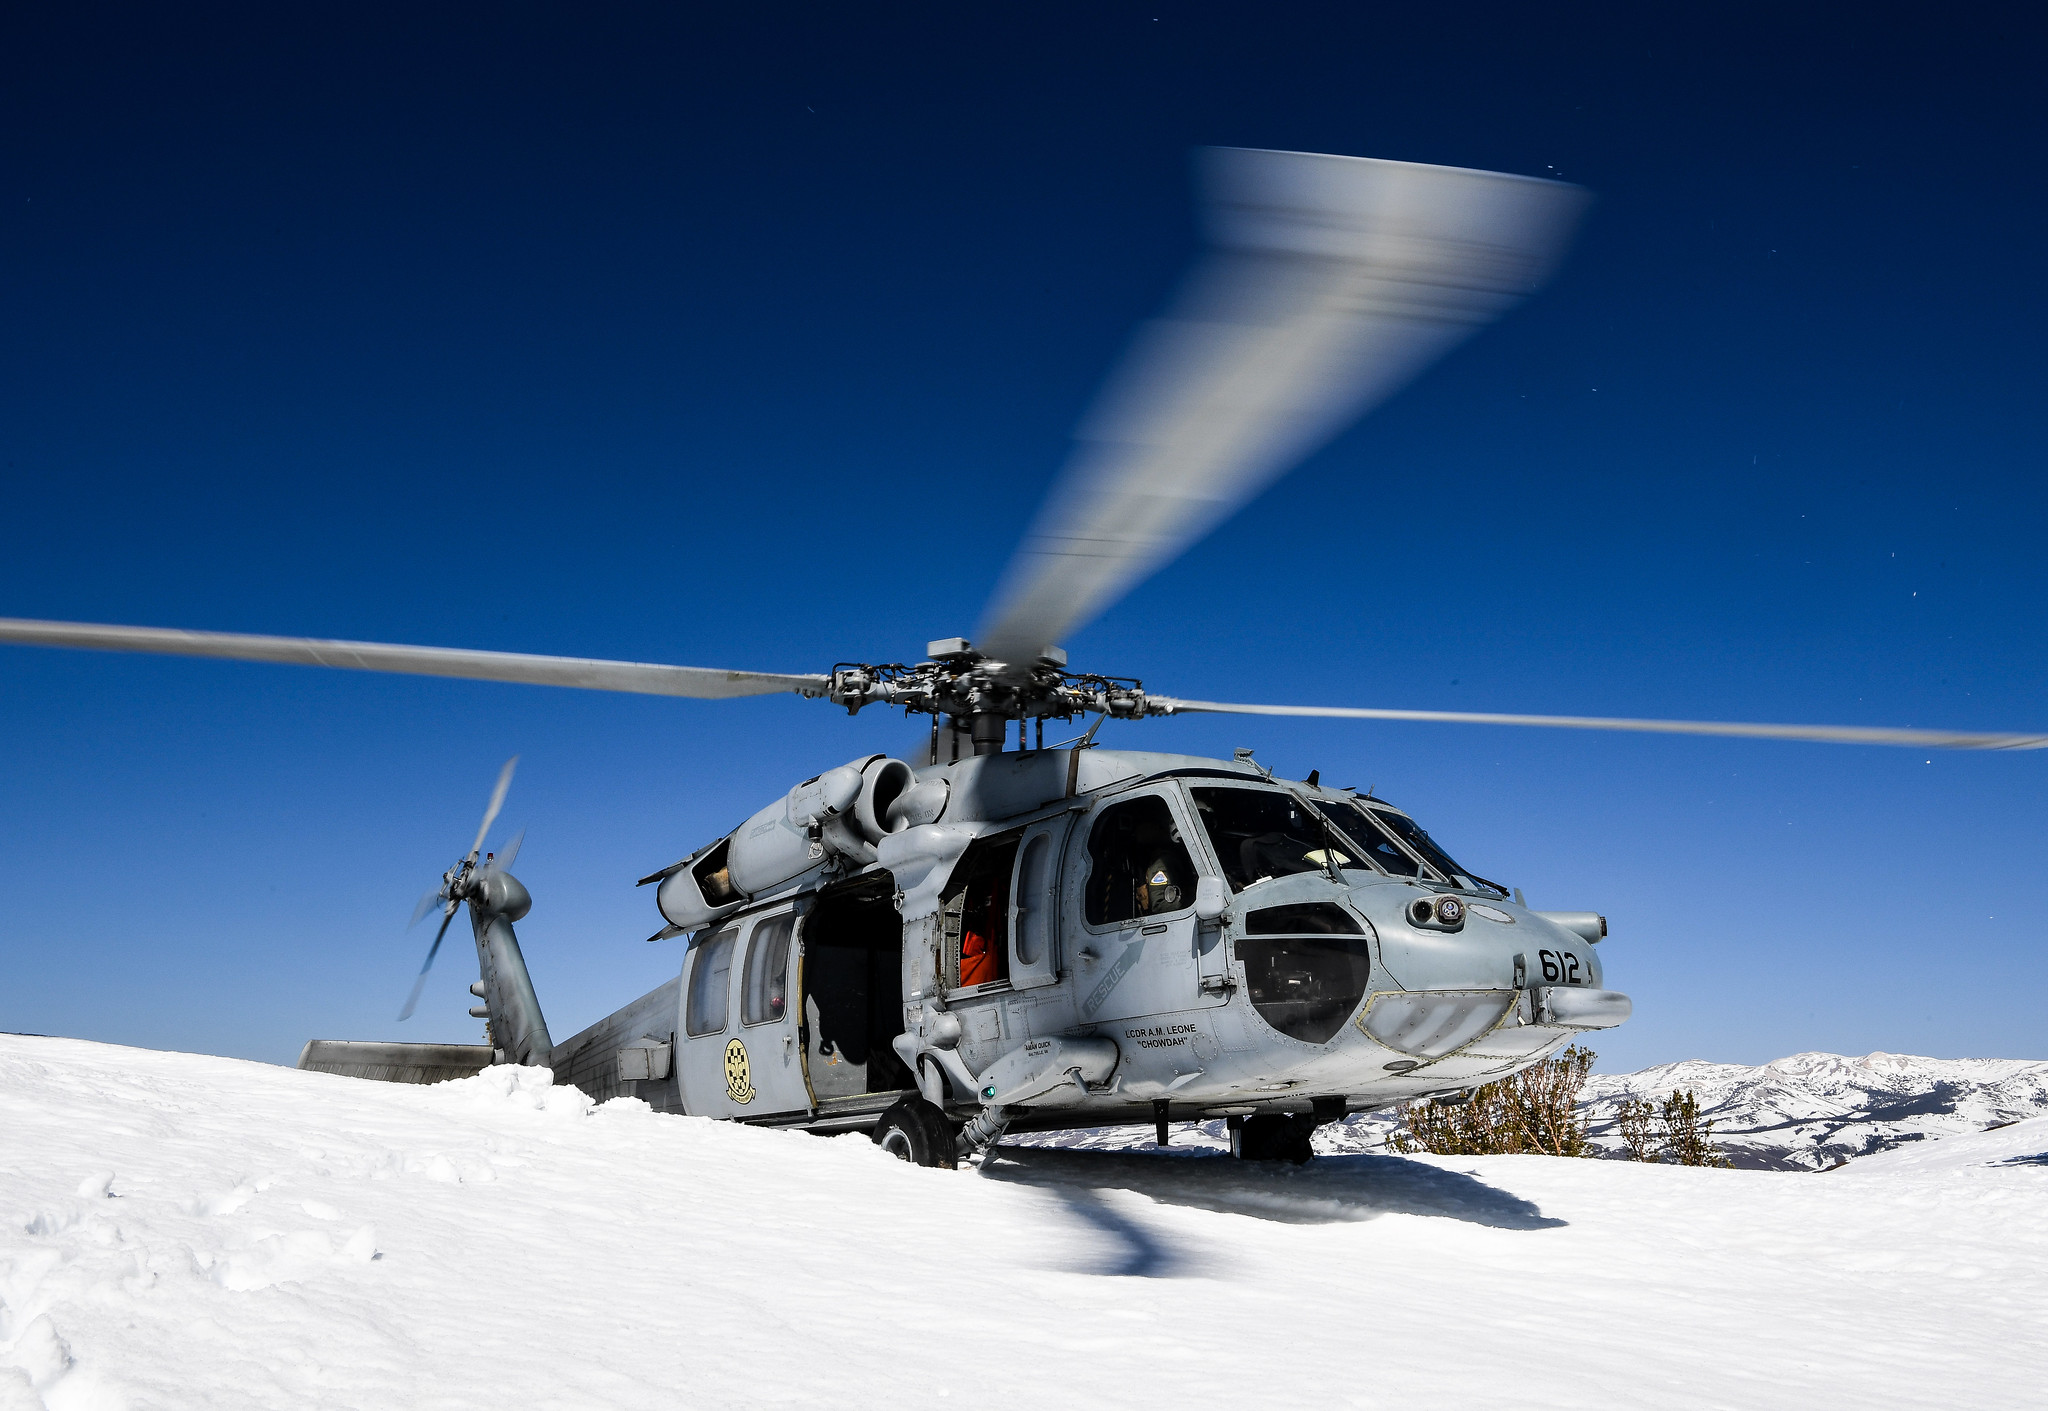 An MH-60S Seahawk helicopter lands in the snow during high-altitude landing training, hosted by Naval Aviation Warfighting Development Center (NAWDC) at Naval Air Station Fallon, Nev., on April 1, 2021. (Chief Mass Communication Specialist Shannon Renfroe/Navy)